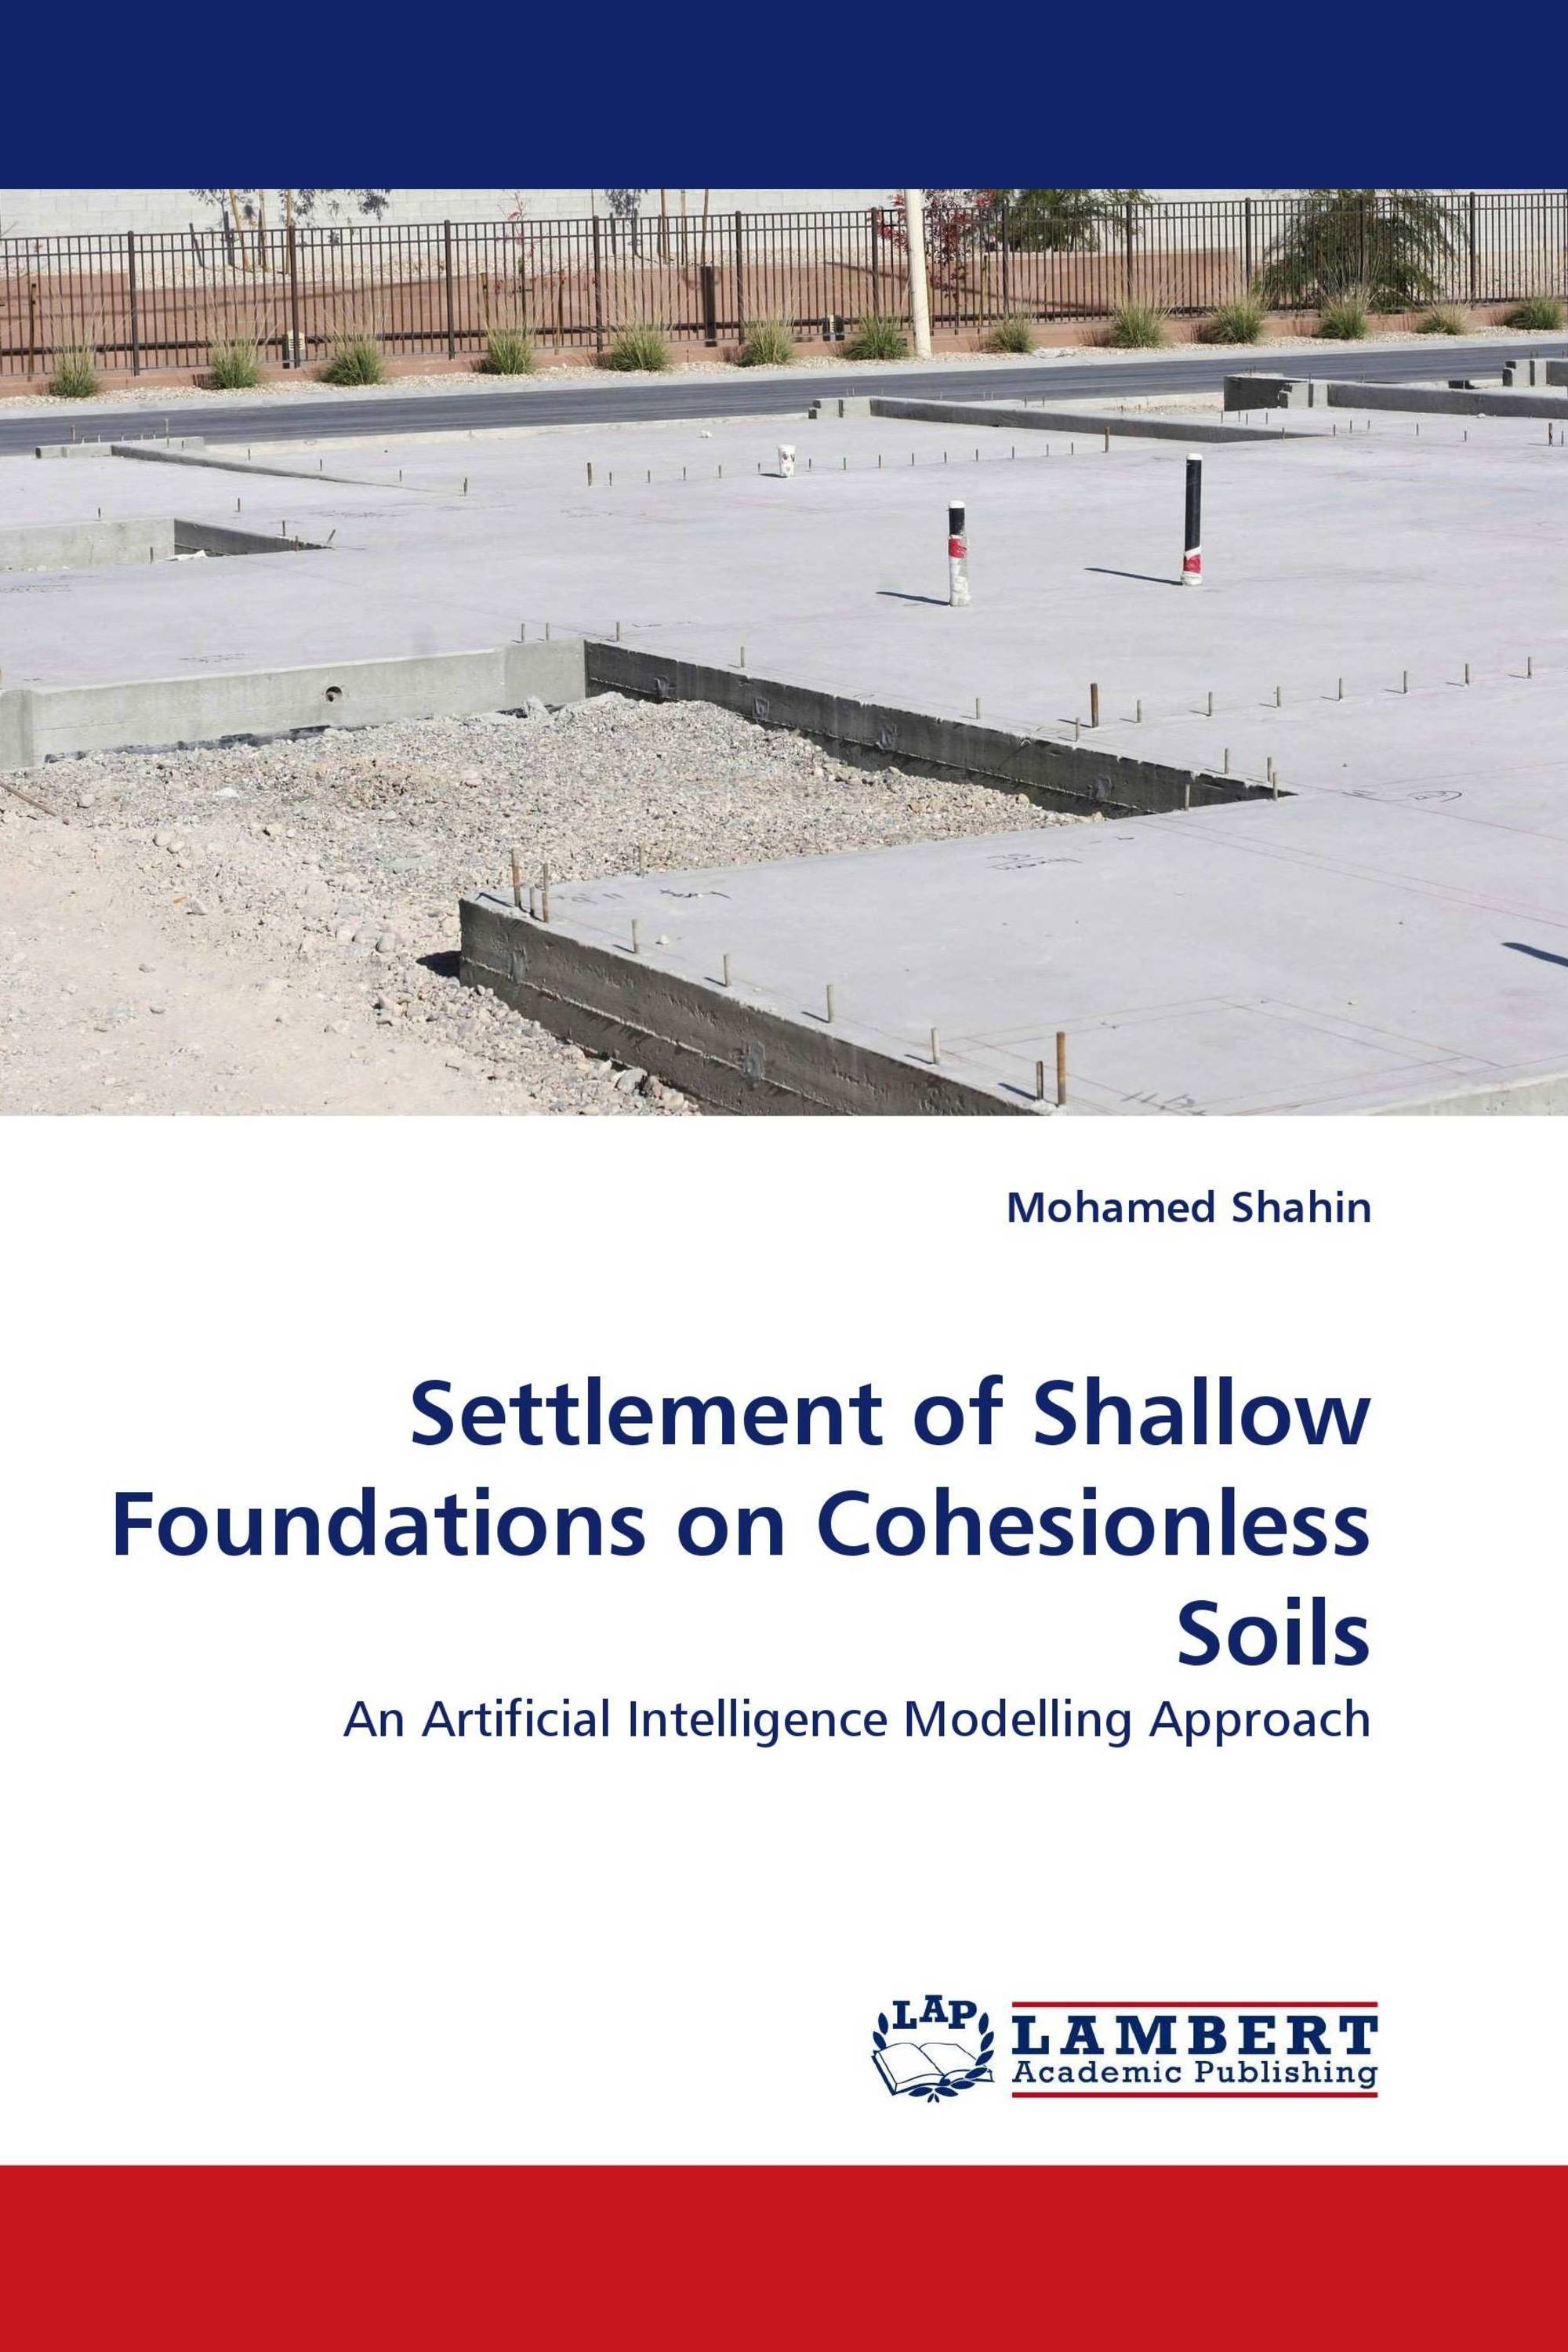 Settlement of Shallow Foundations on Cohesionless Soils